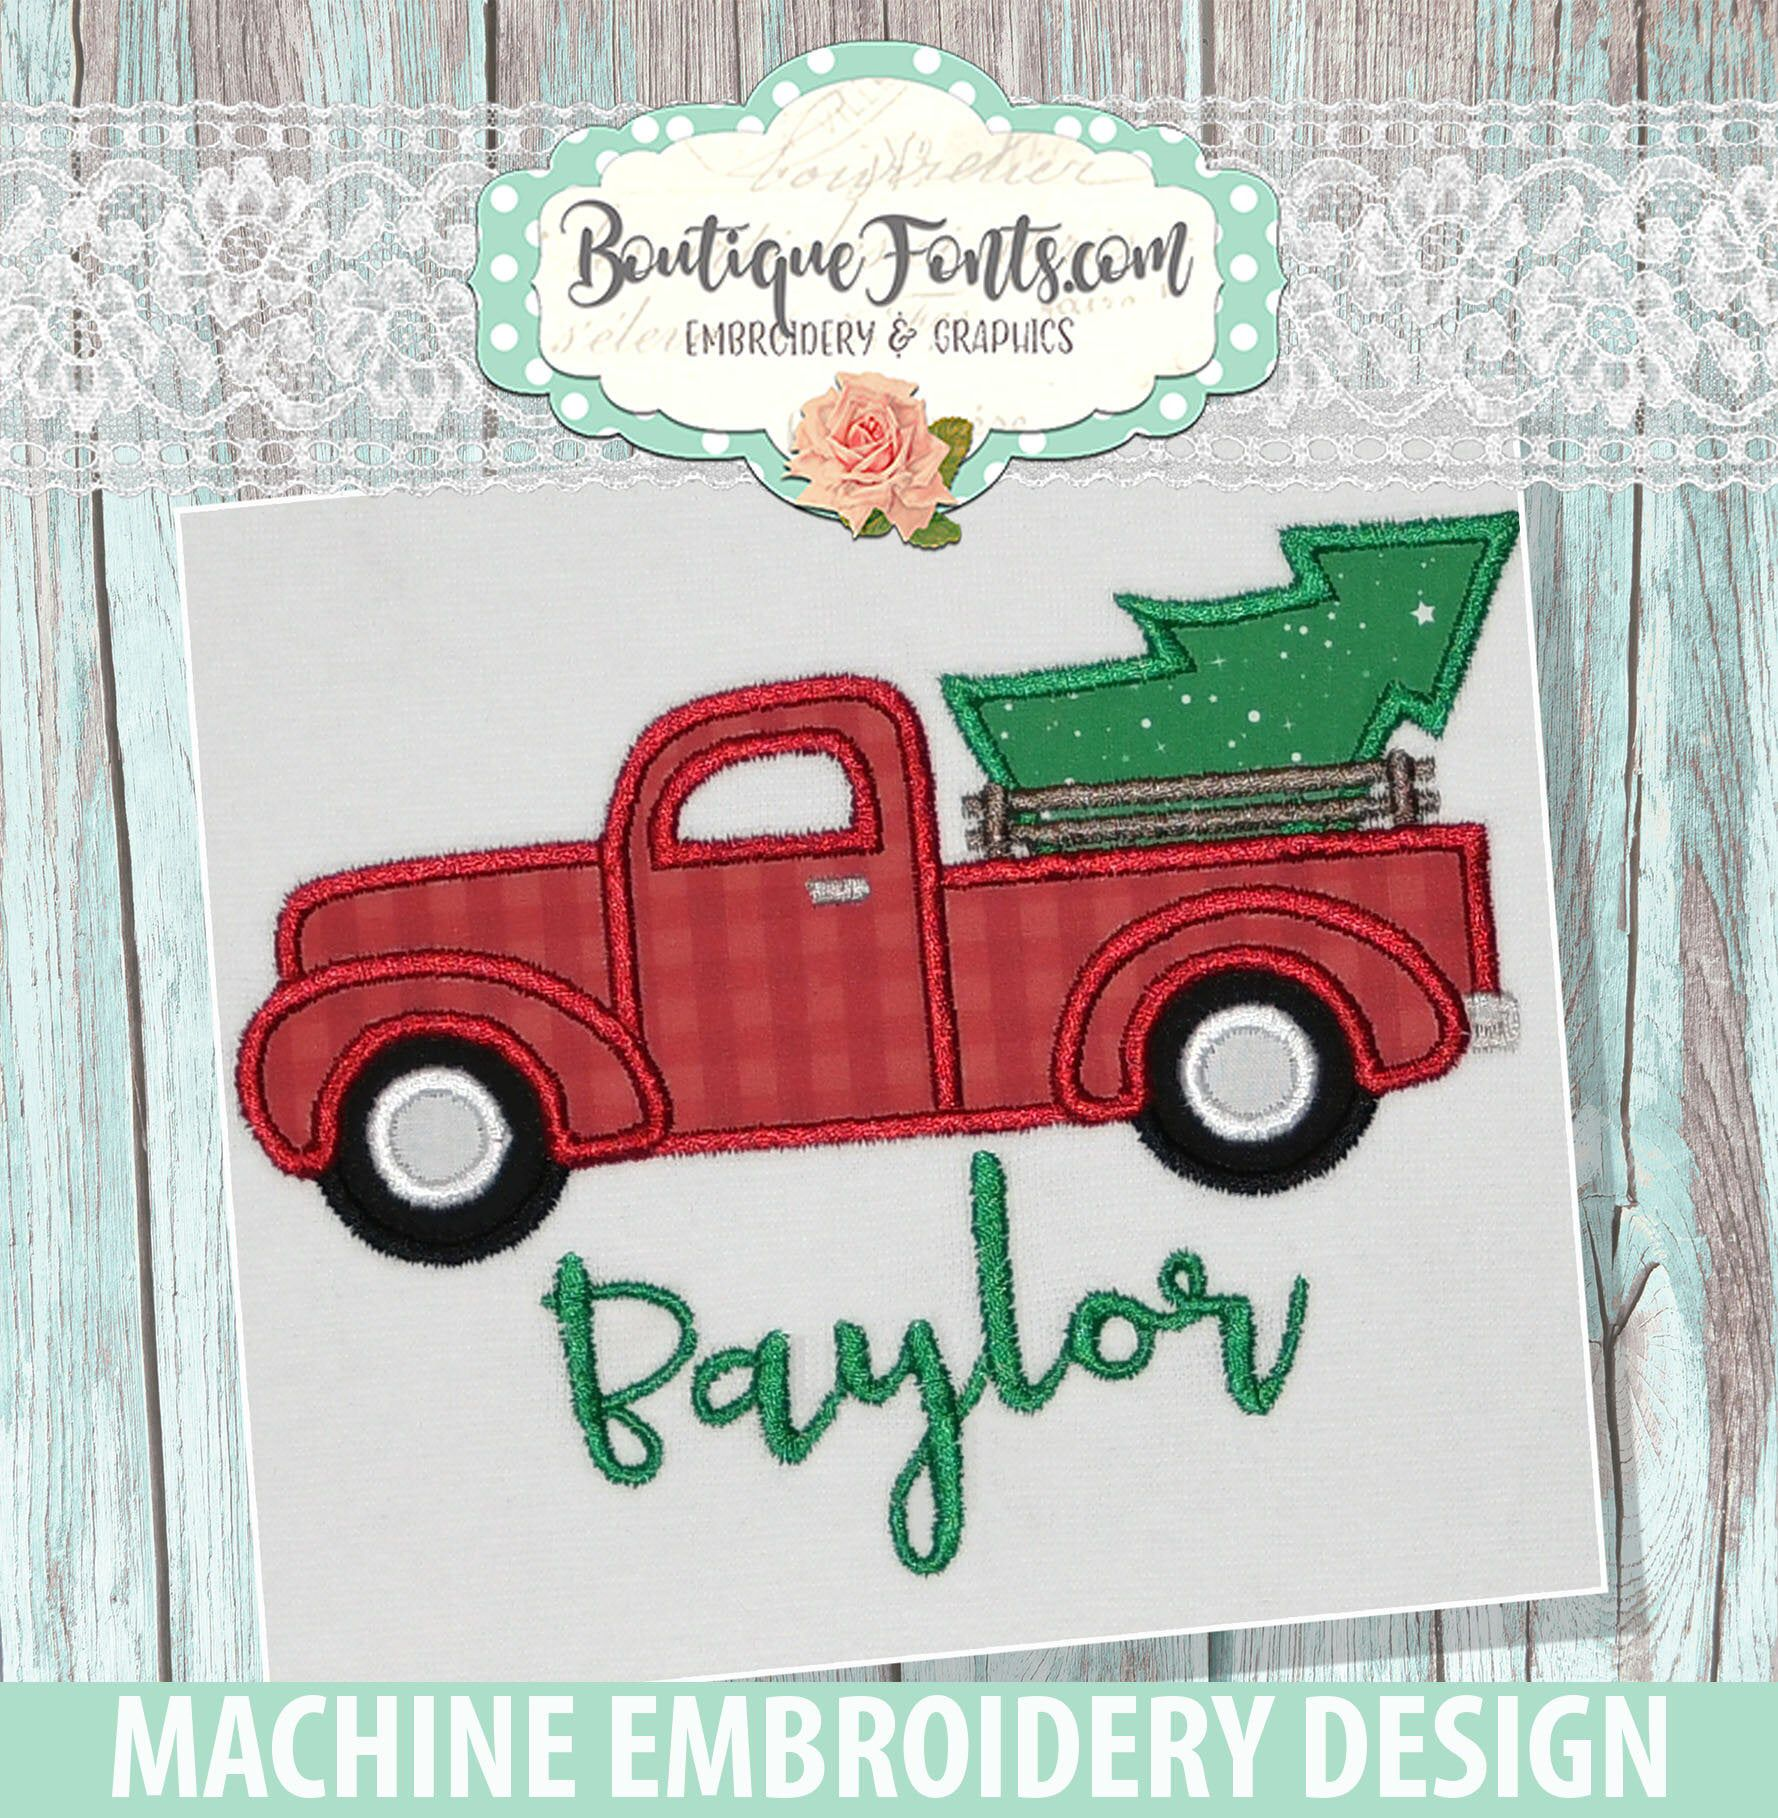 Christmas Tree Truck Applique Embroidery Design Instant Etsy In 2020 Applique Embroidery Designs Christmas Tree Truck Embroidery Designs